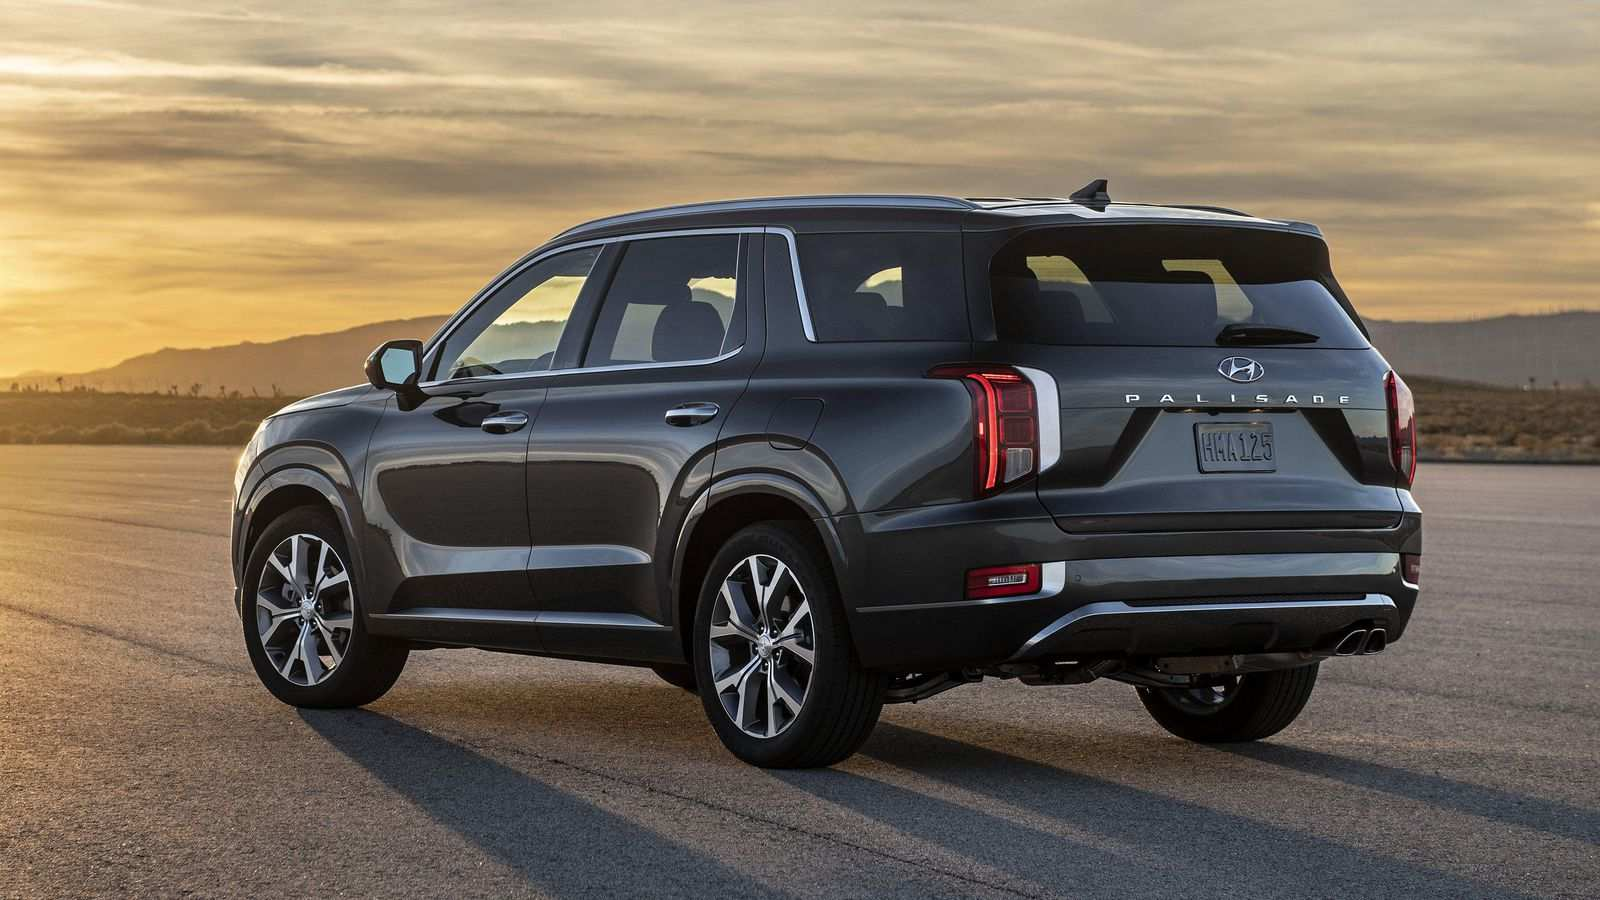 64 Great When Will The 2020 Hyundai Palisade Be Available Review for When Will The 2020 Hyundai Palisade Be Available